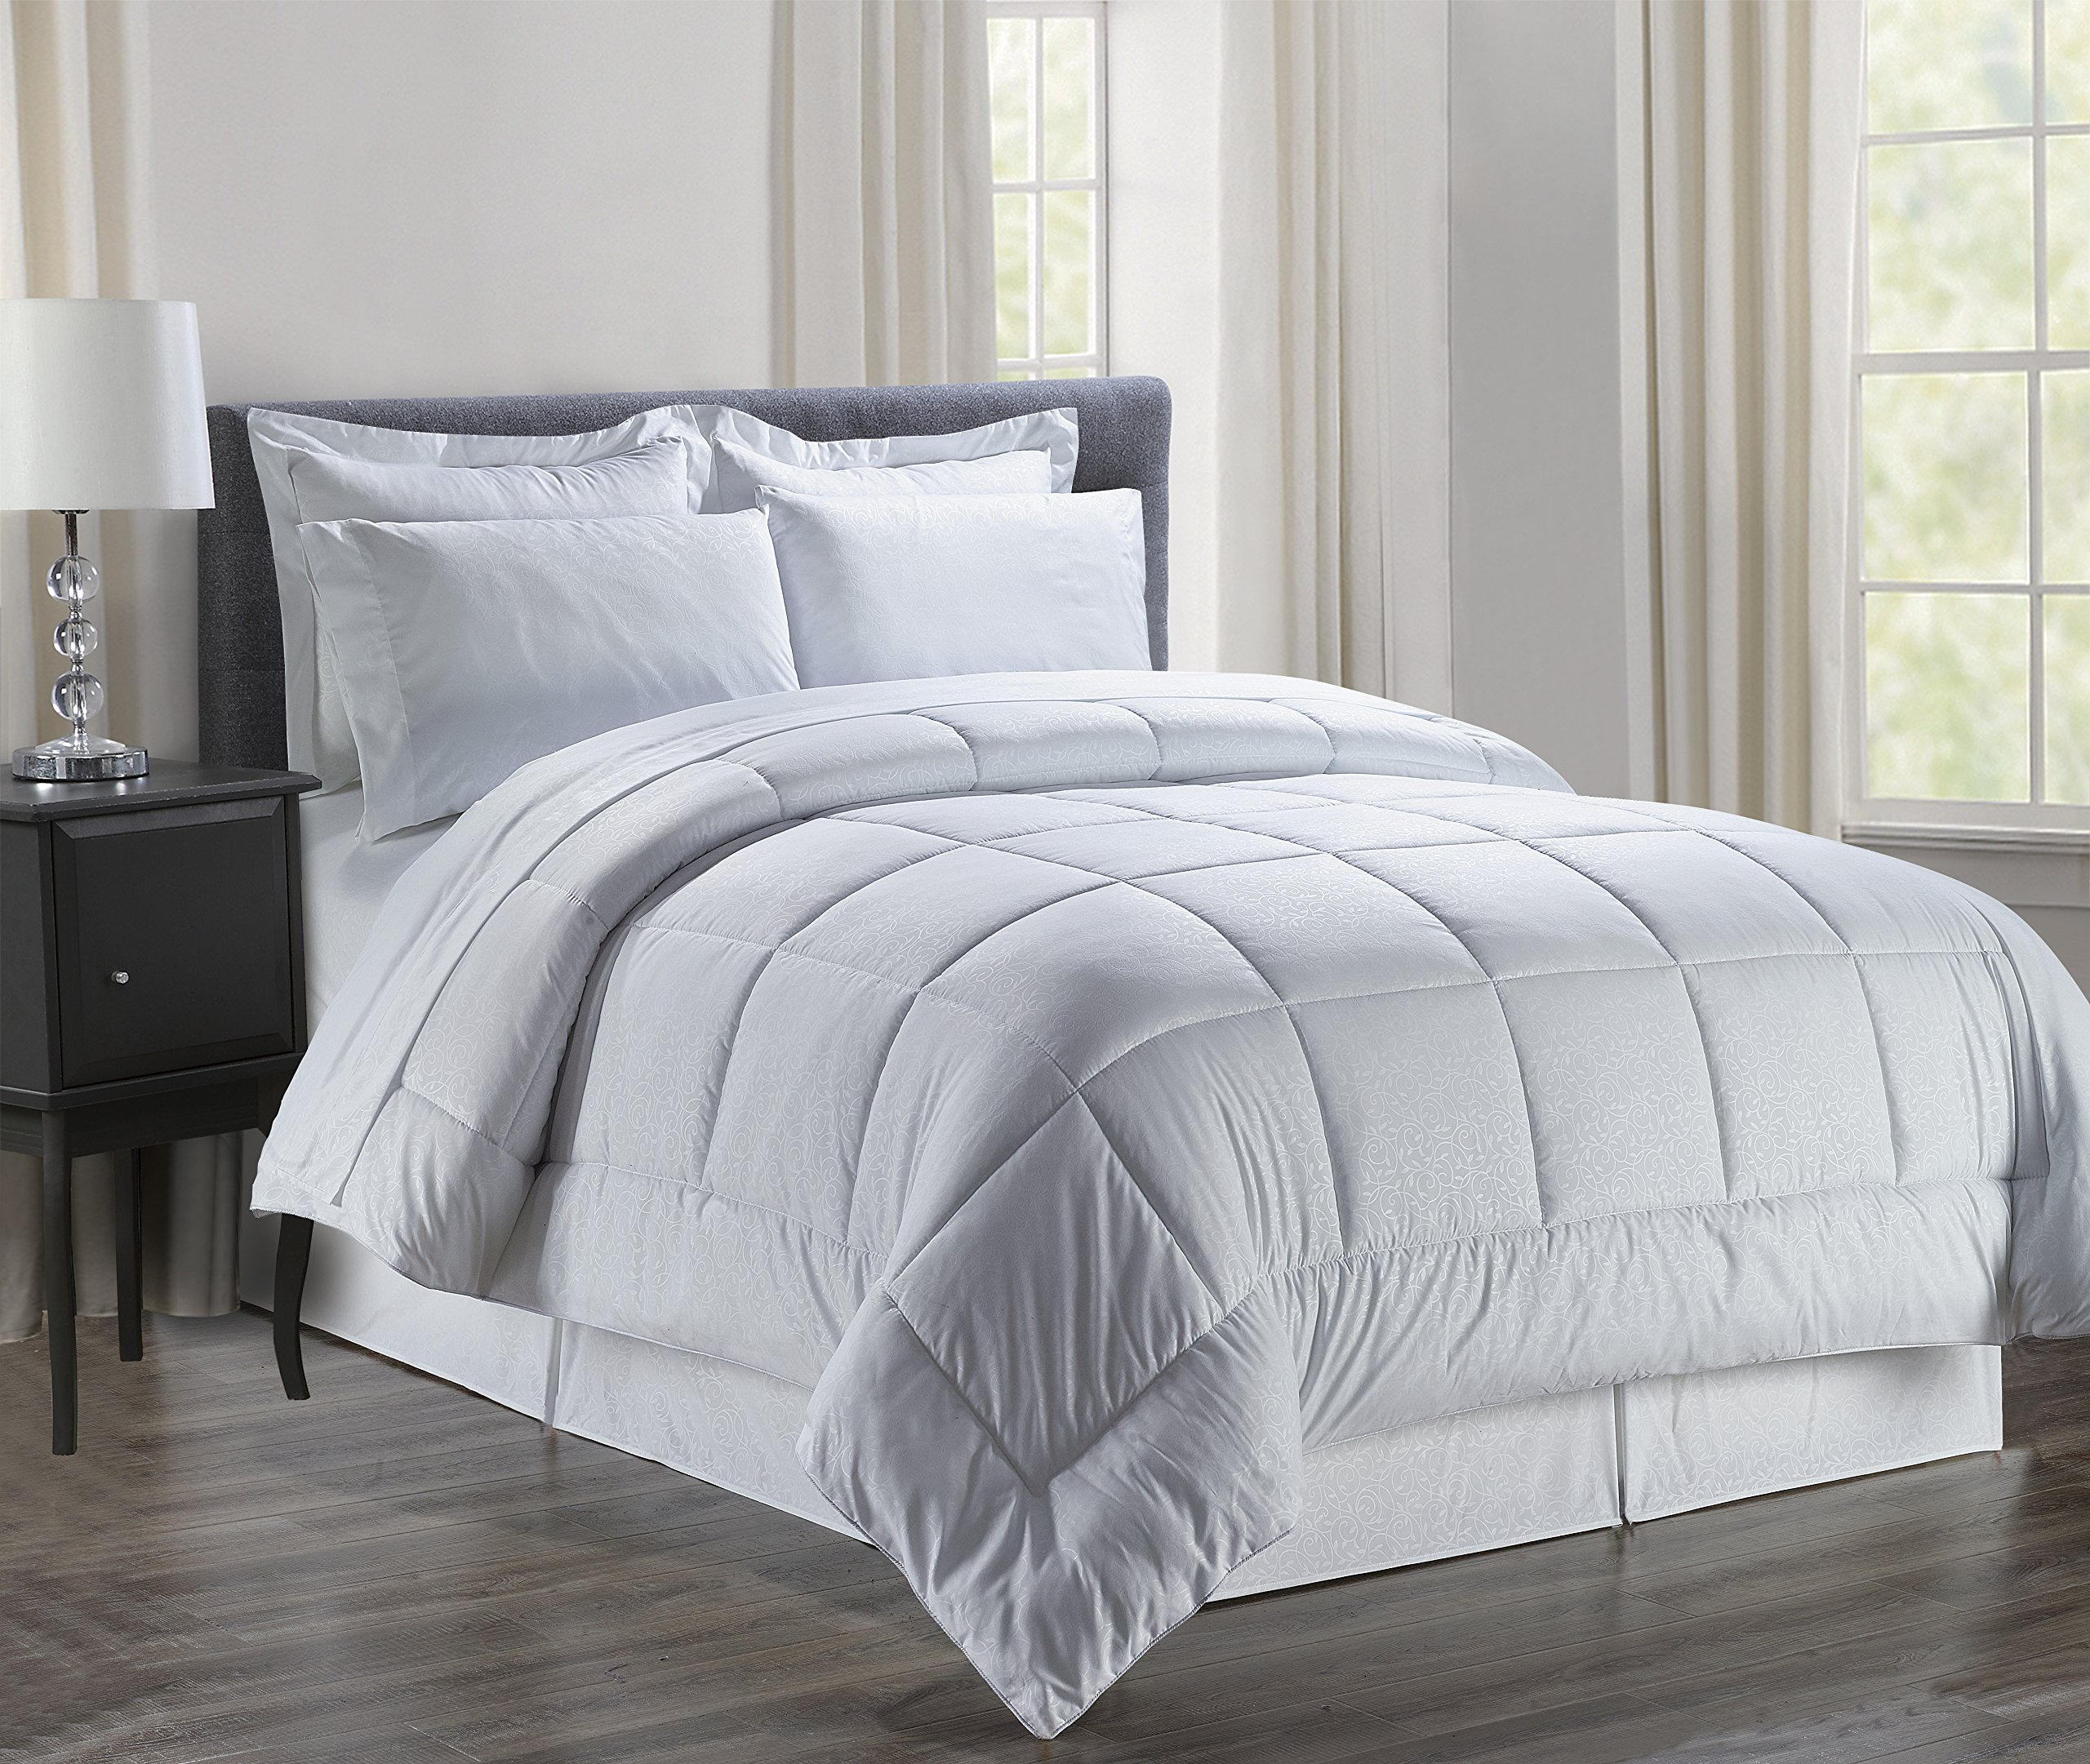 Luxury Bed-in-a-Bag Comforter Set on Amazon! Elegant Comfort Wrinkle Resistant - Silky Soft Beautiful Design Complete Bed-in-a-Bag 8-Piece Comforter Set -HypoAllergenic- Full/Queen, White